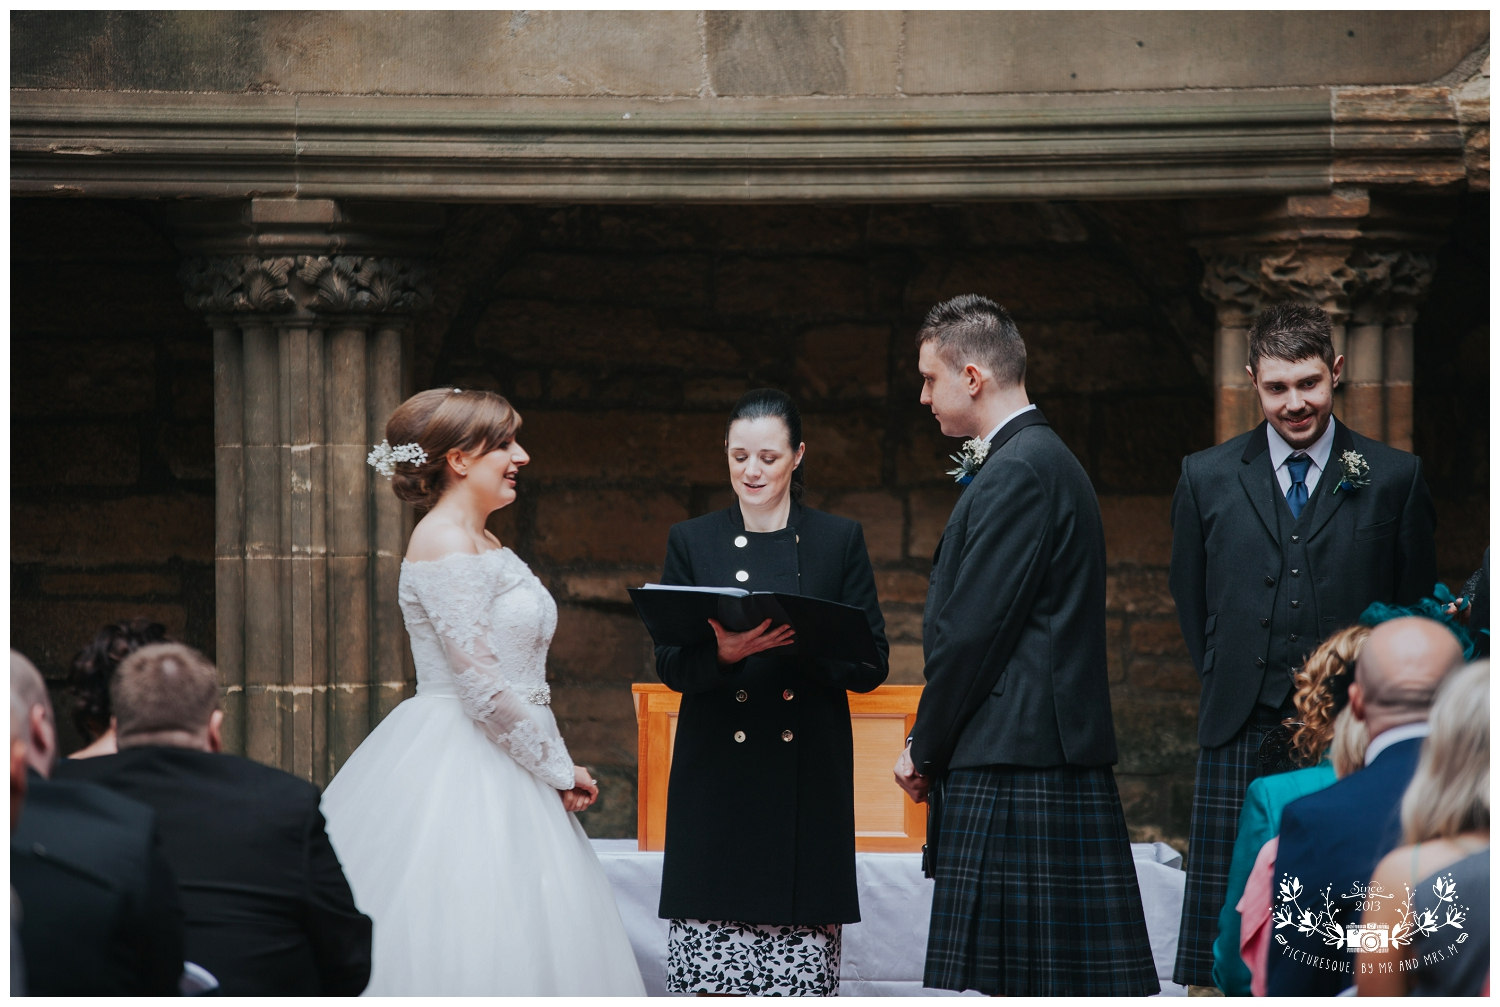 Linlithgow Palace and Beancross wedding_0021.jpg